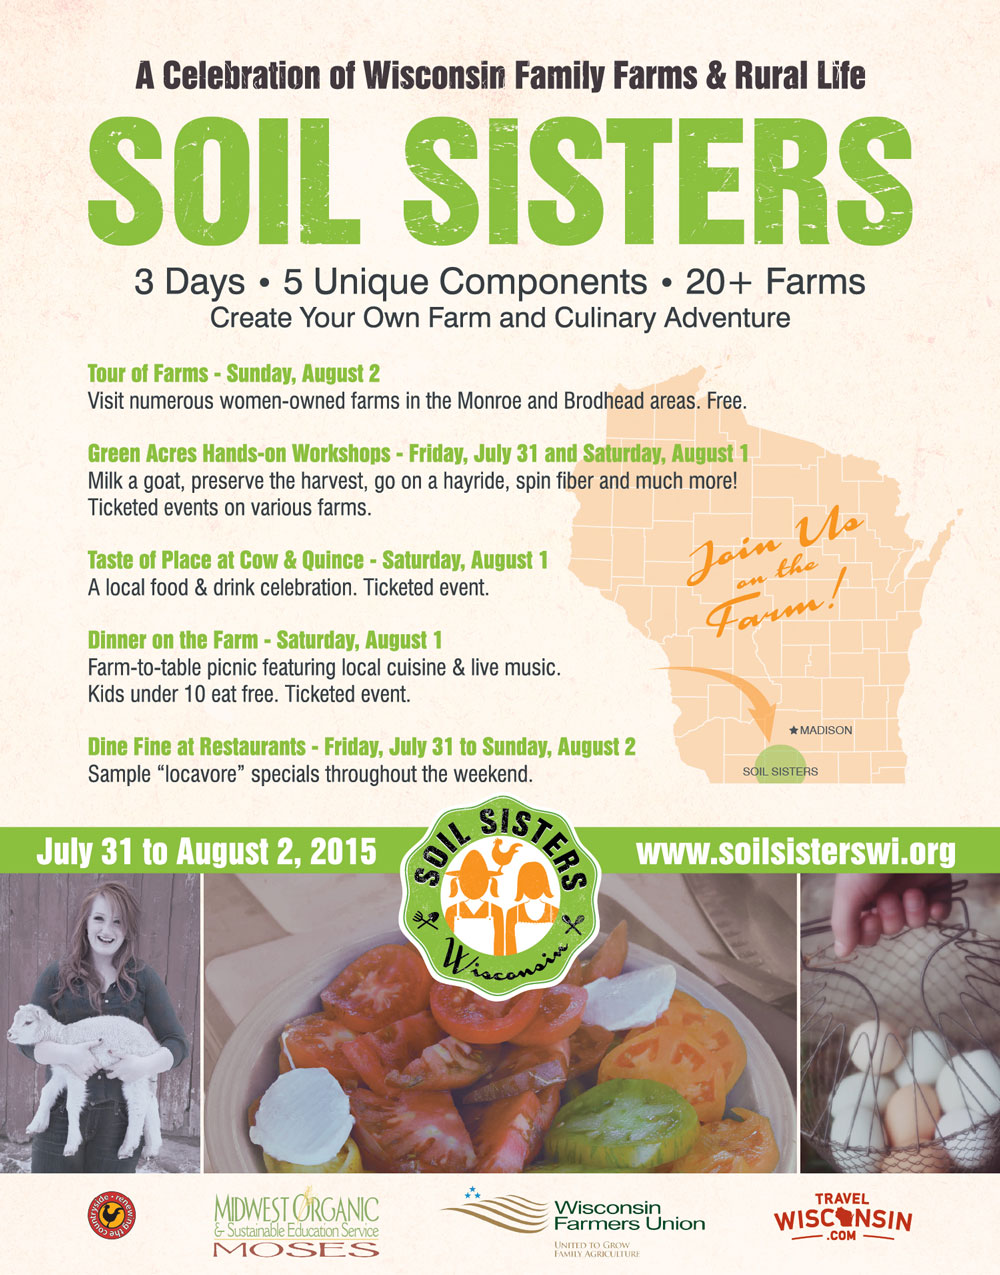 Soil Sisters: July 31-Aug. 2, 2015 in Wisconsin